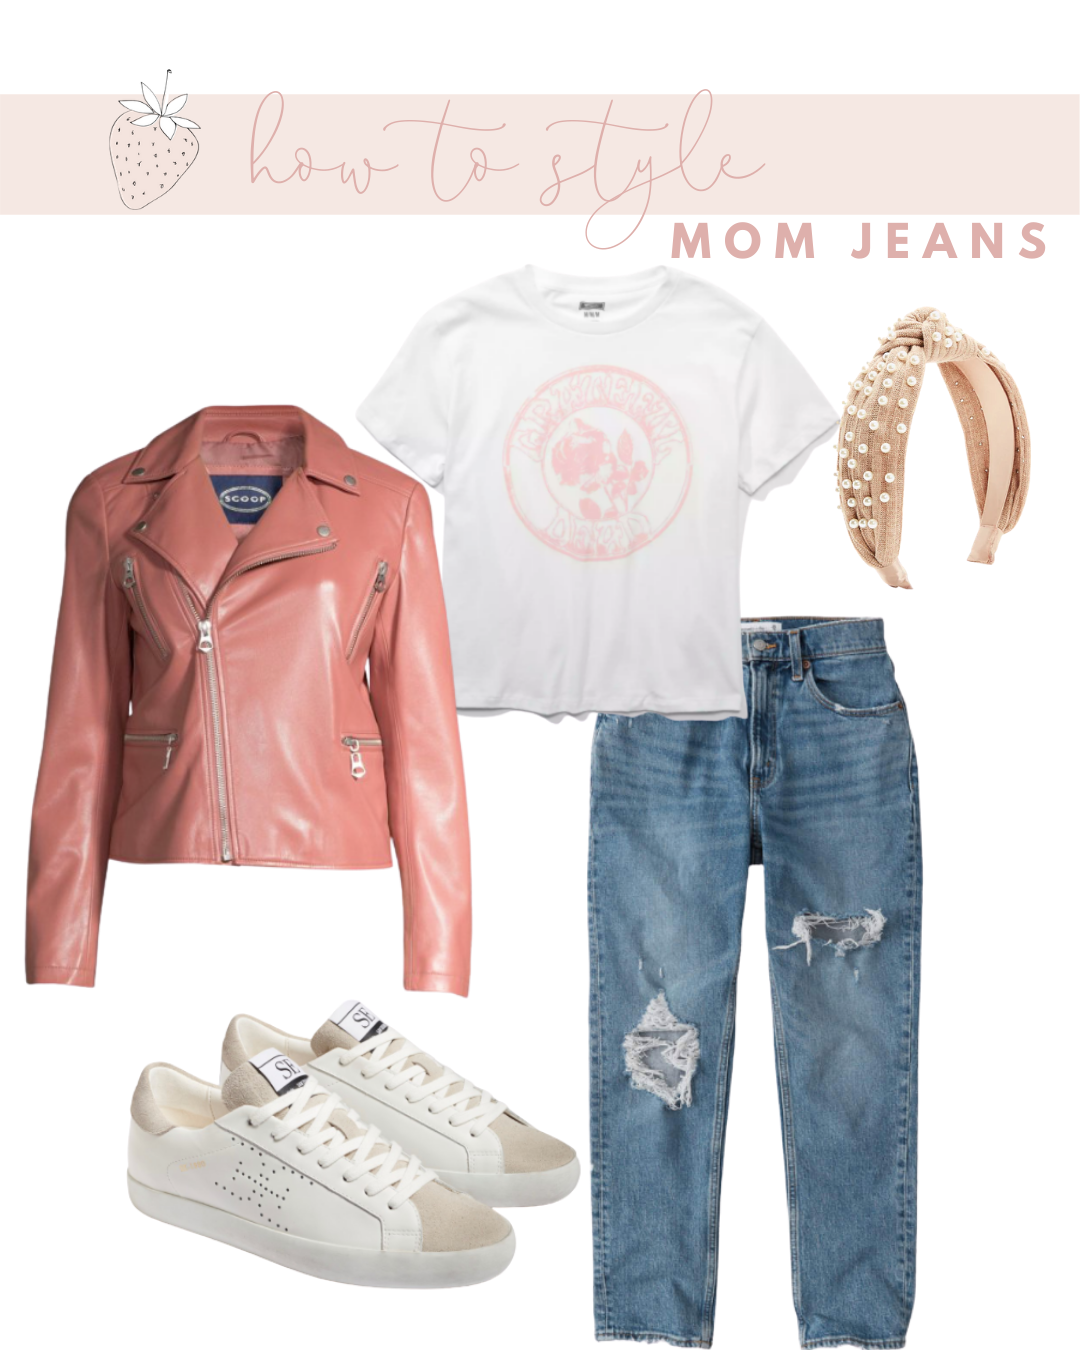 Mom Jeans with a Graphic Tee